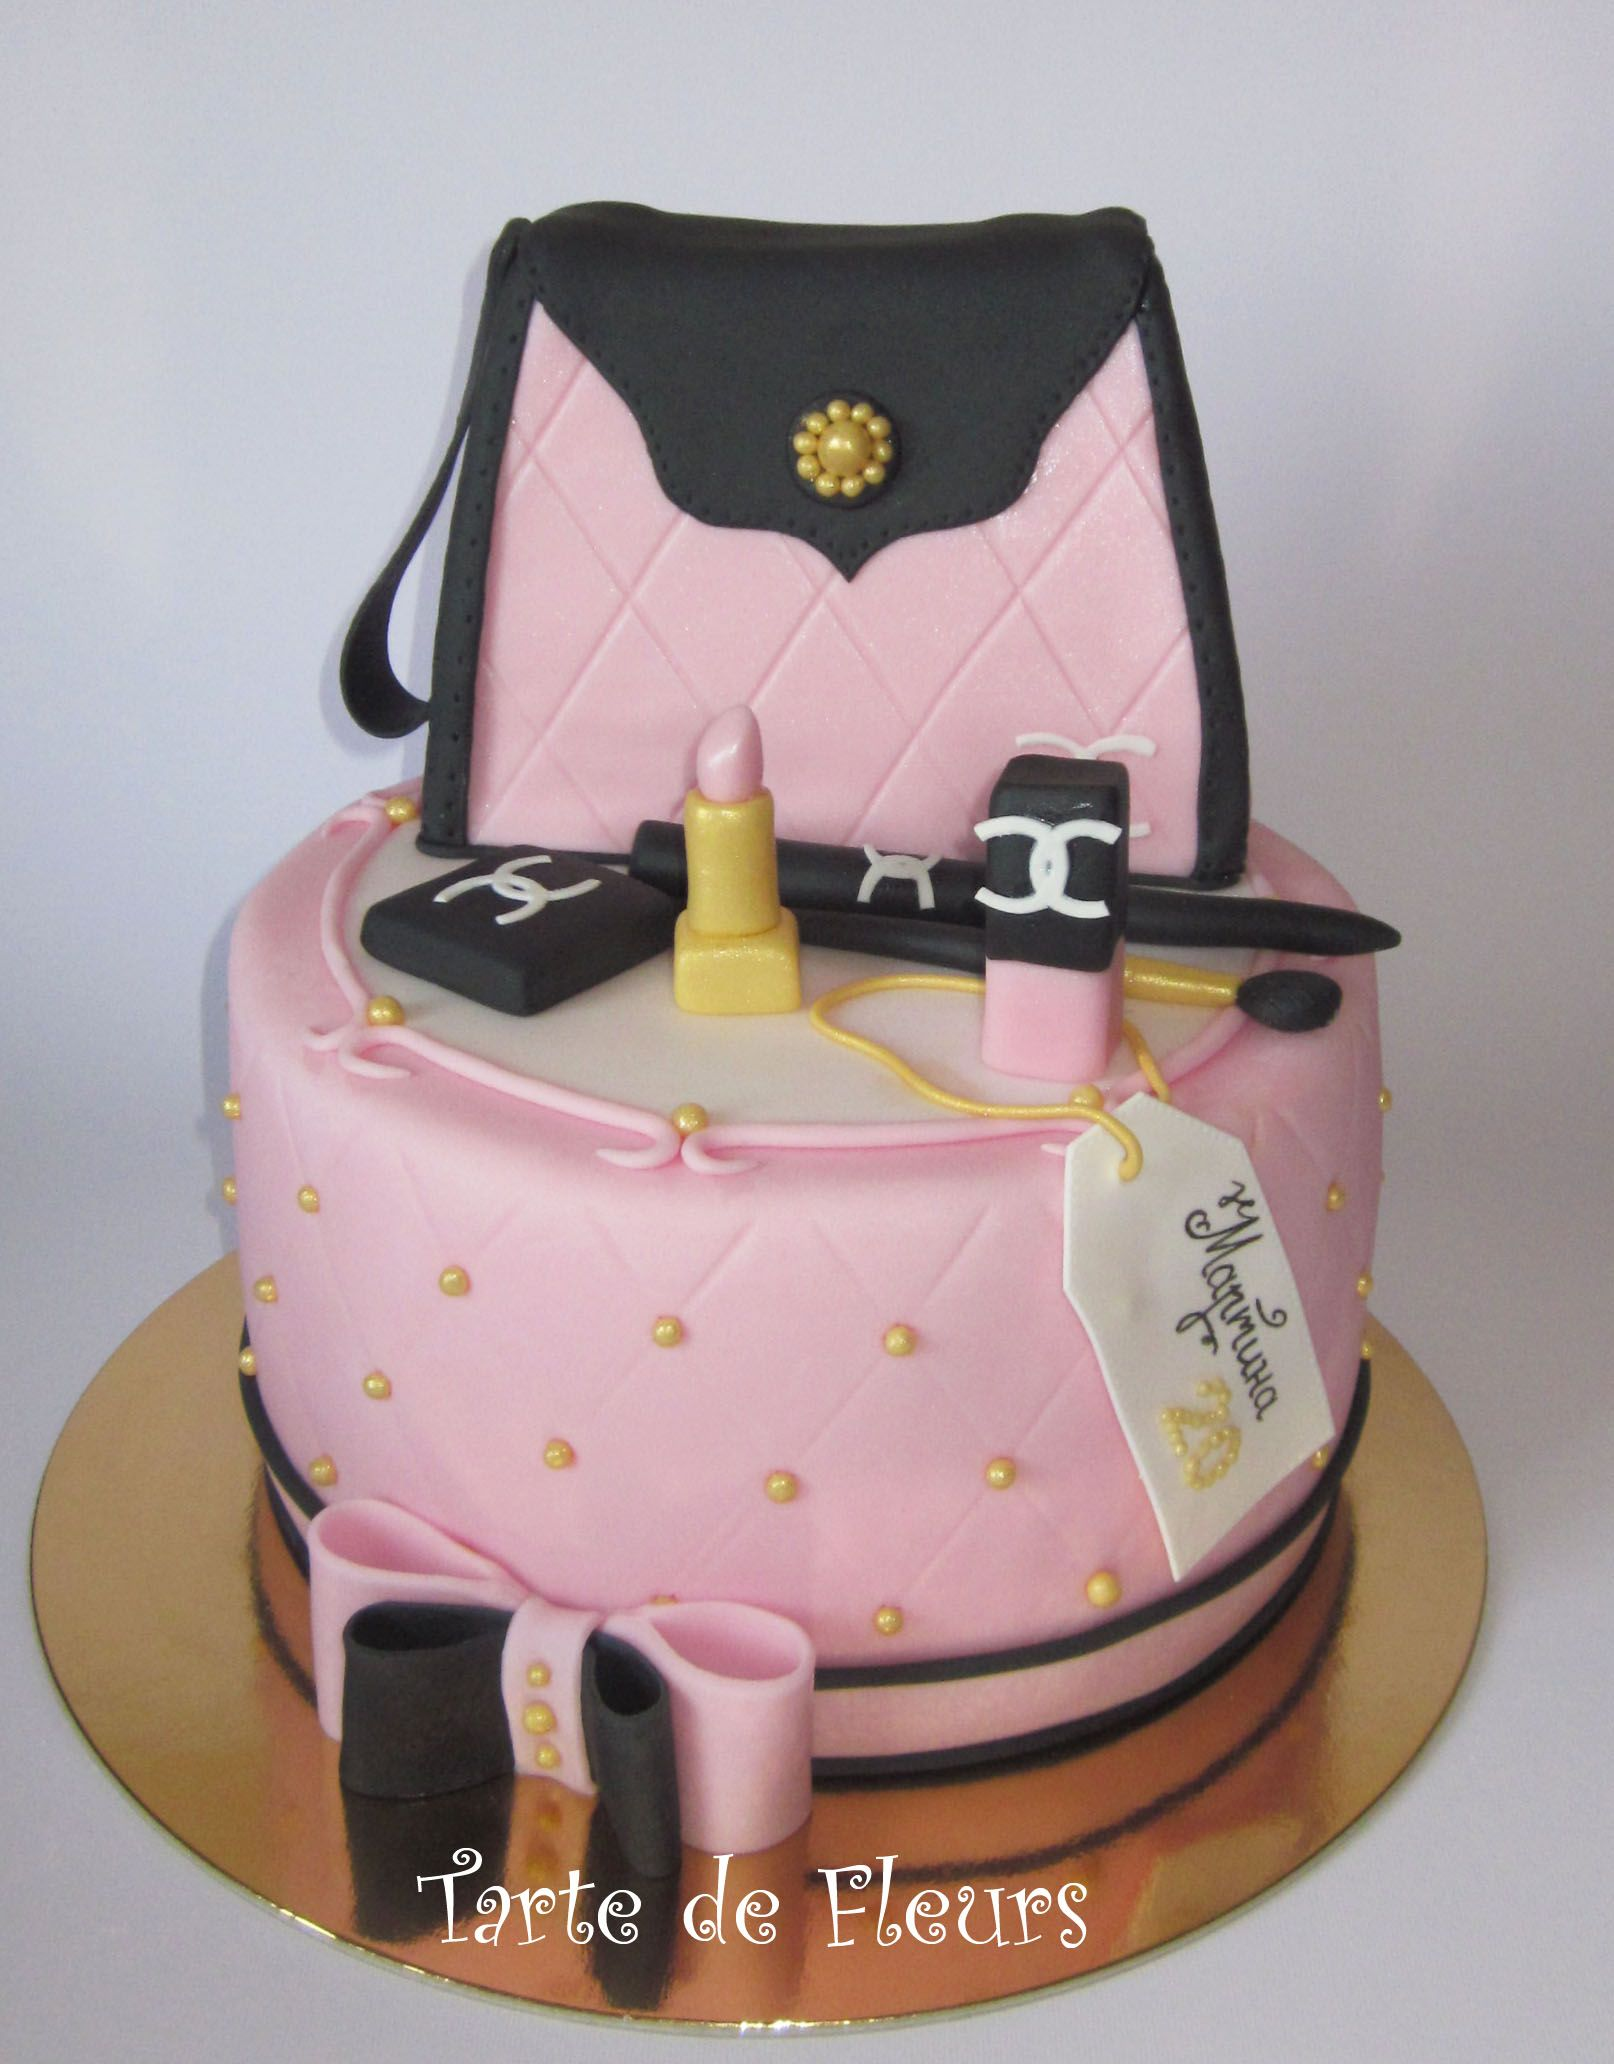 Purse And Make Up SHOES PURSES  BAGS OH MY Pinterest - Purse birthday cake ideas